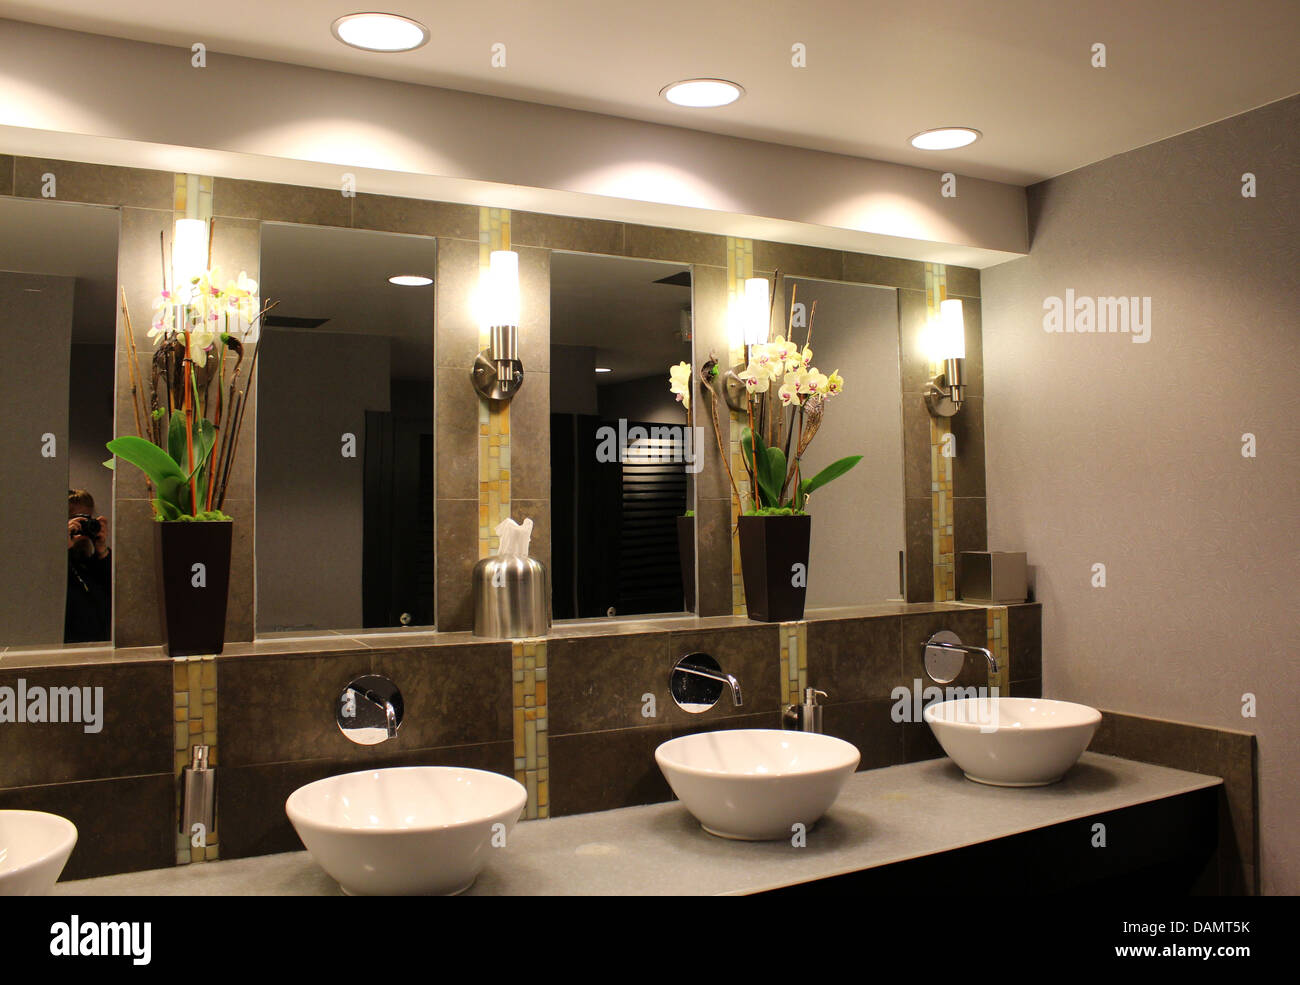 Ultra chic bathroom with fancy sinks,mirrors and flower